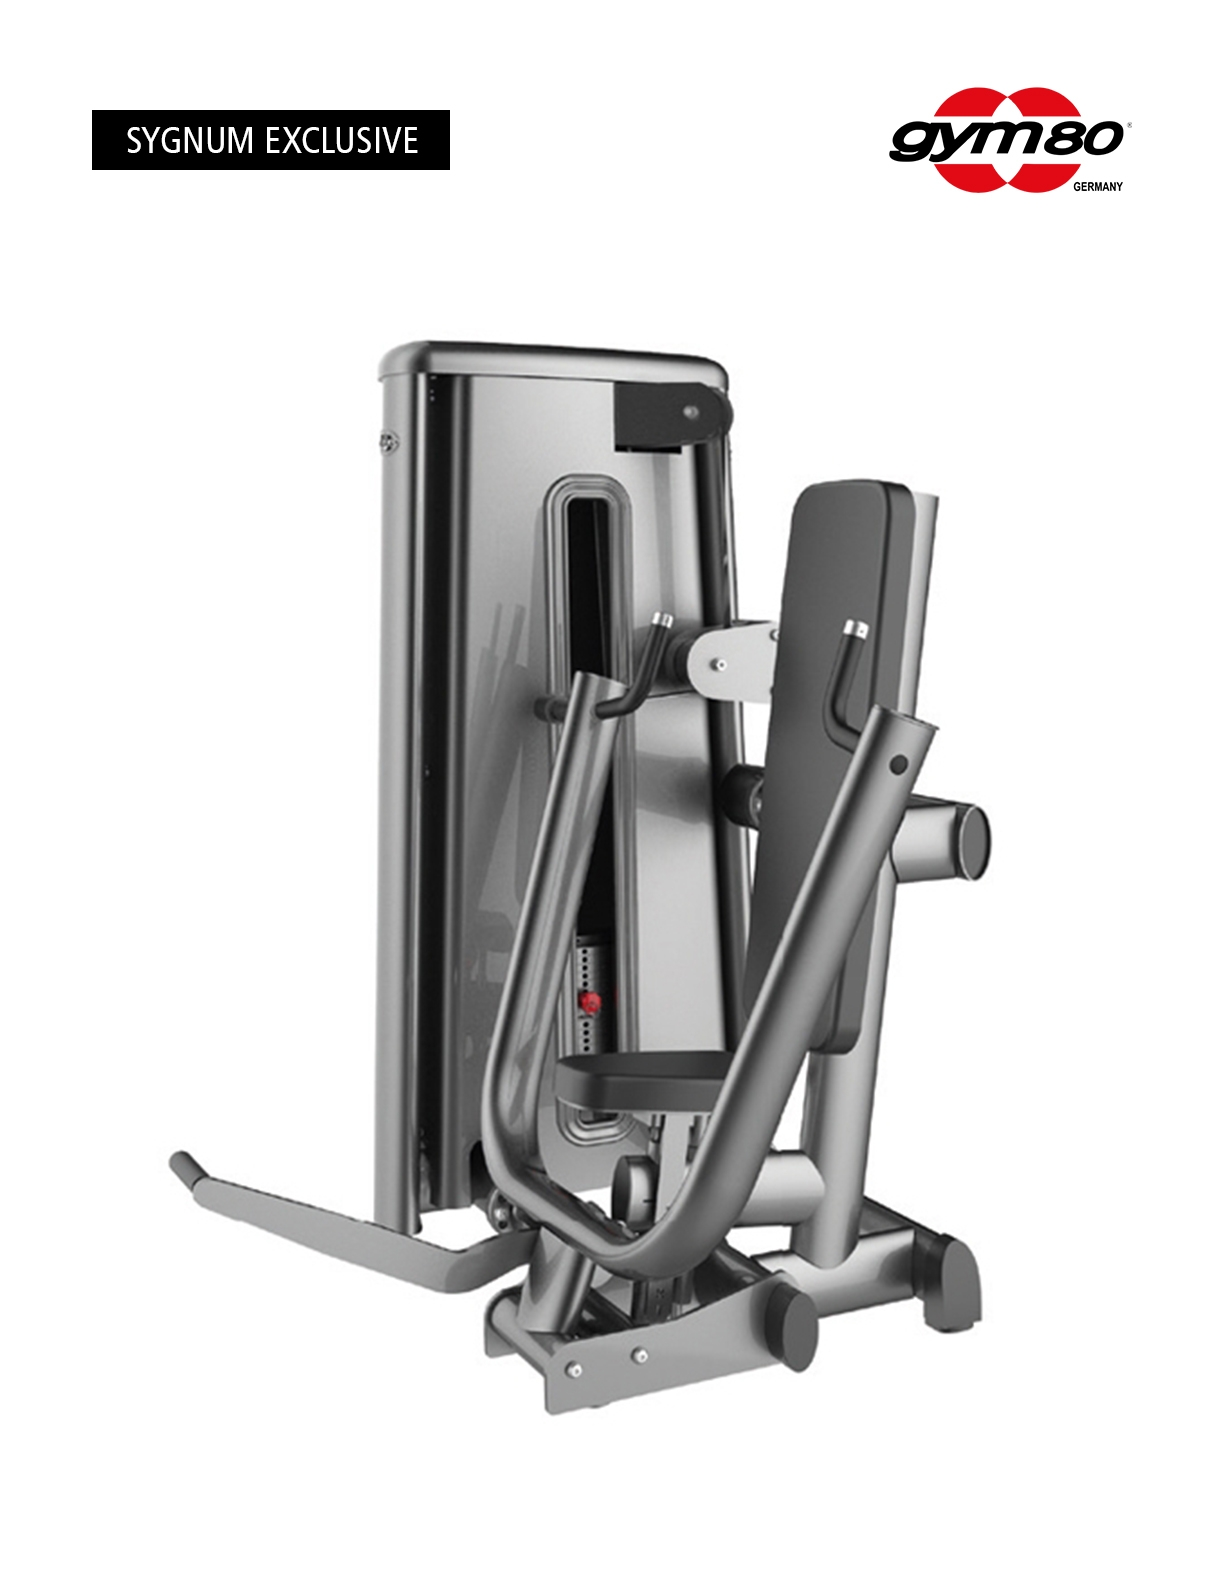 G3016 SEATED CHEST PRESS MACHINE